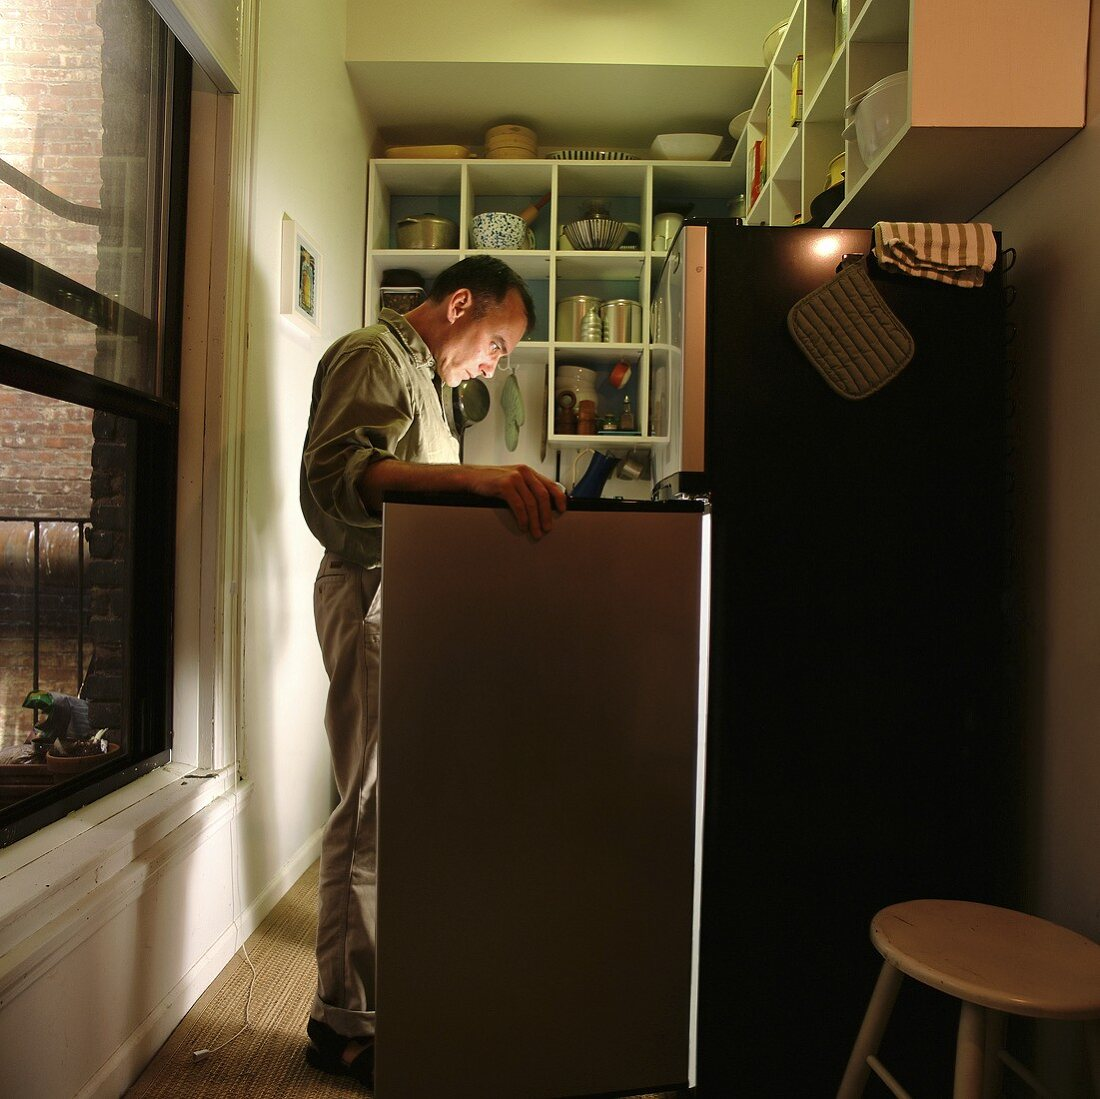 A man looking in a refrigerator